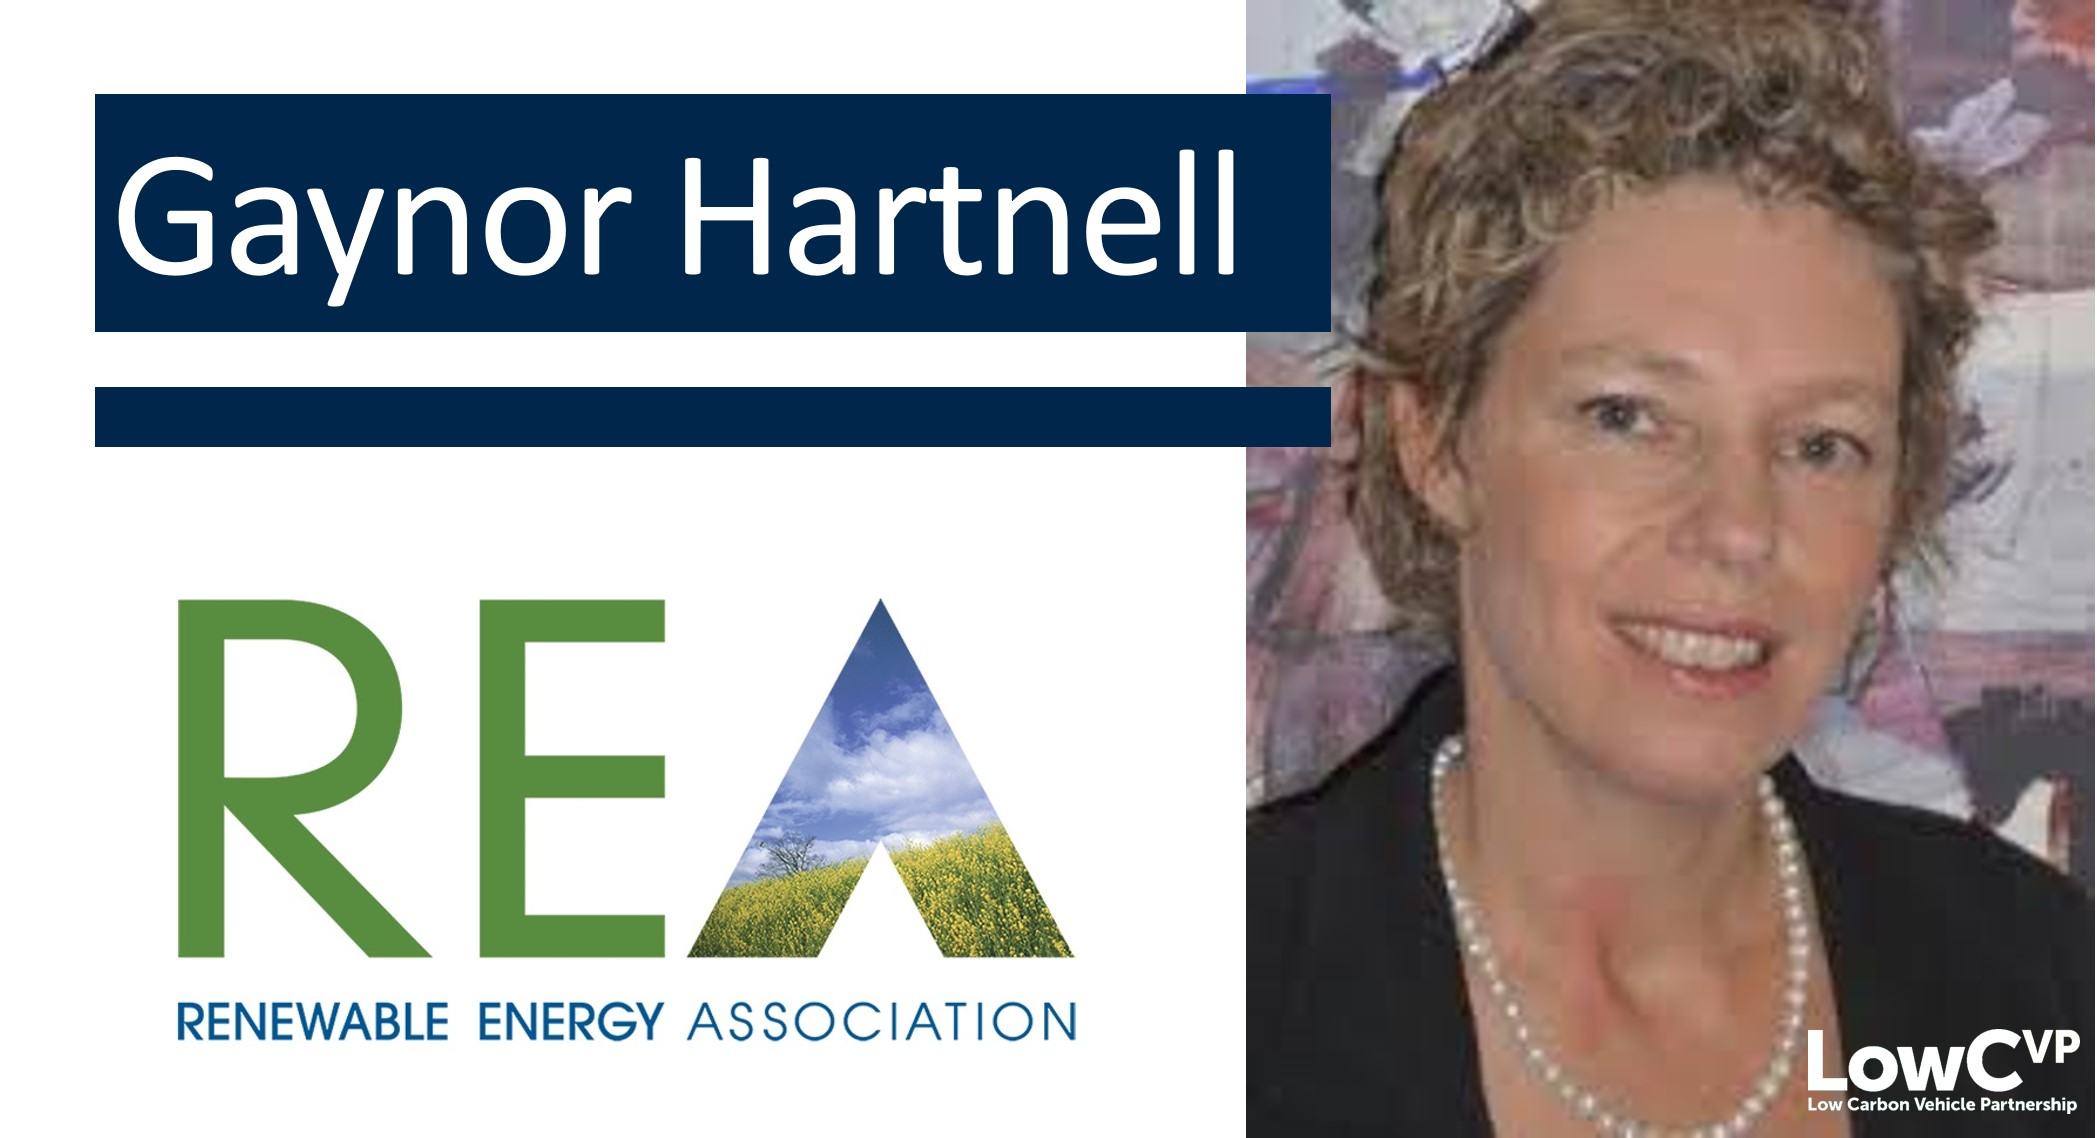 Gaynor Hartnell, Head of Transport Fuels & LFG, Renewable Energy Association